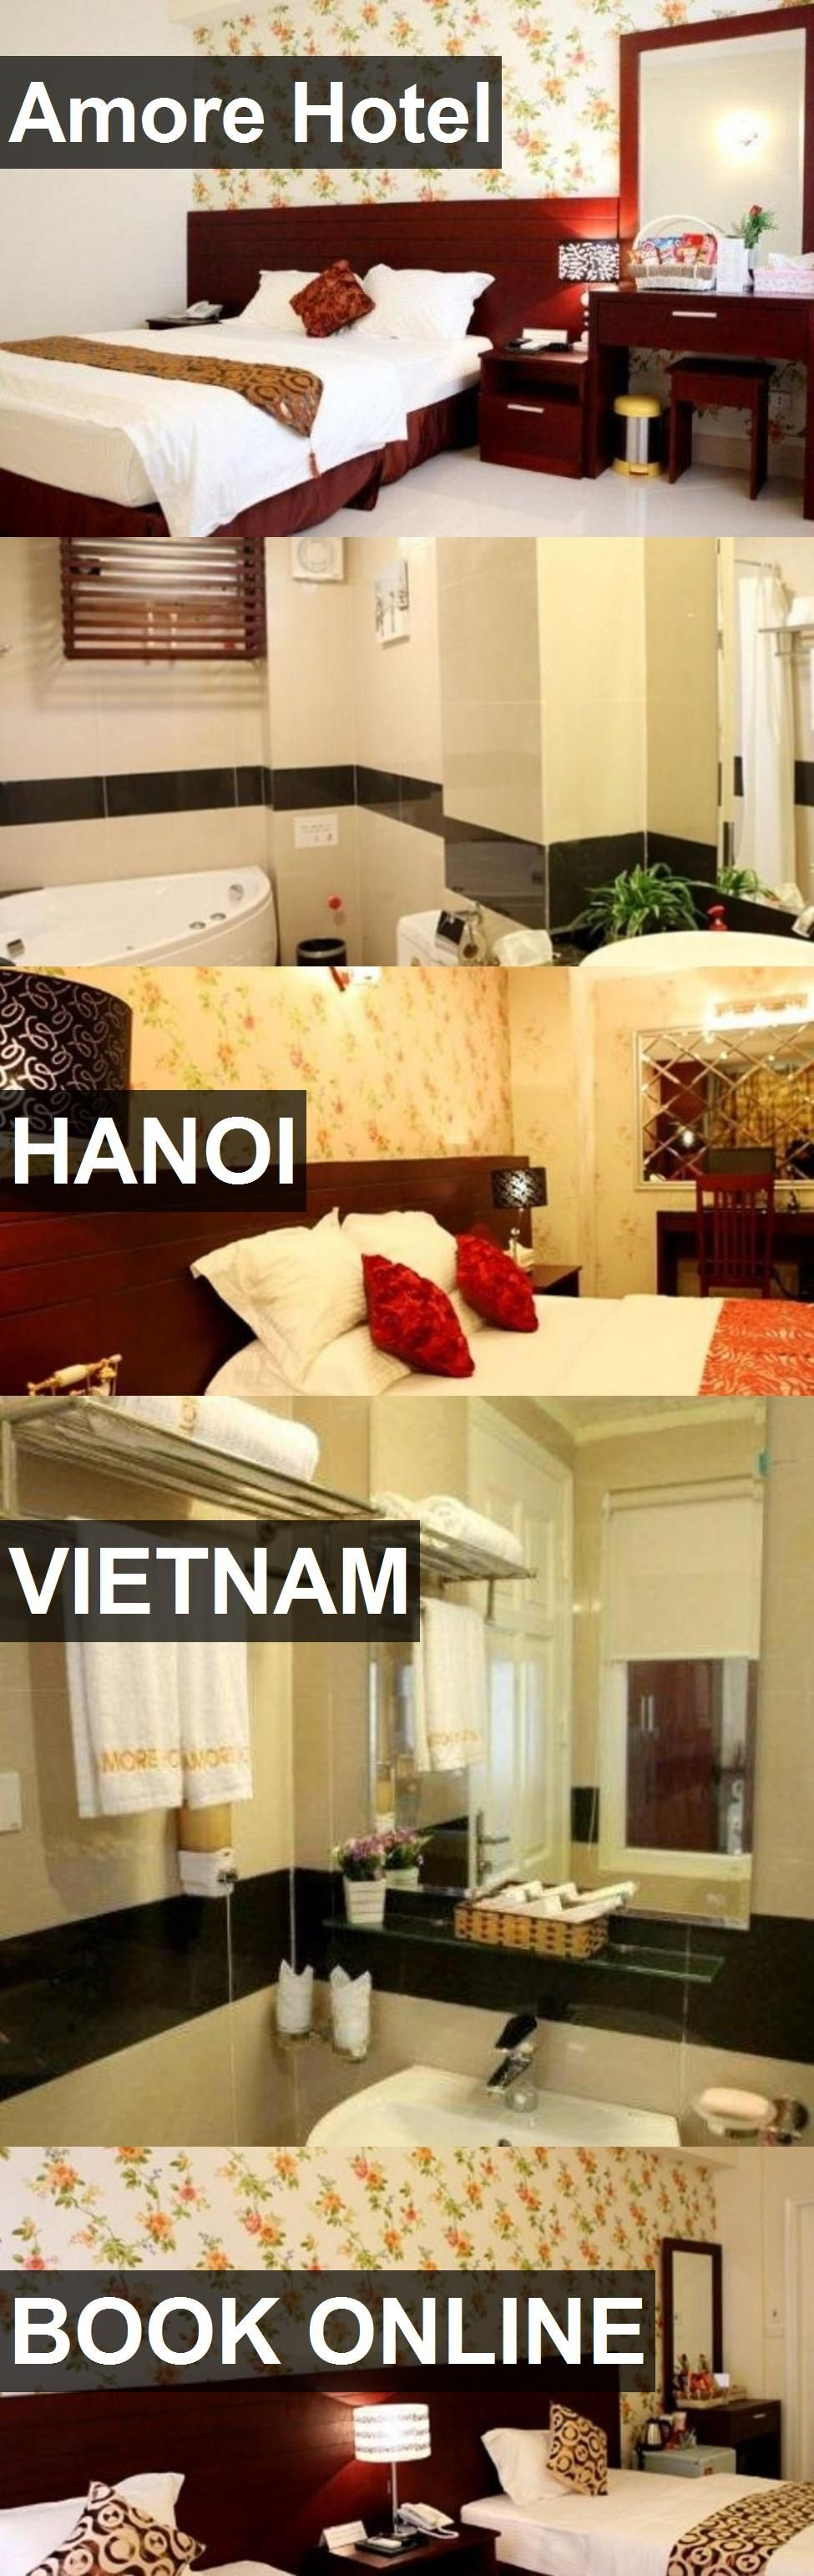 Amore Hotel in Hanoi, Vietnam. For more information, photos, reviews and best prices please follow the link. #Vietnam #Hanoi #travel #vacation #hotel